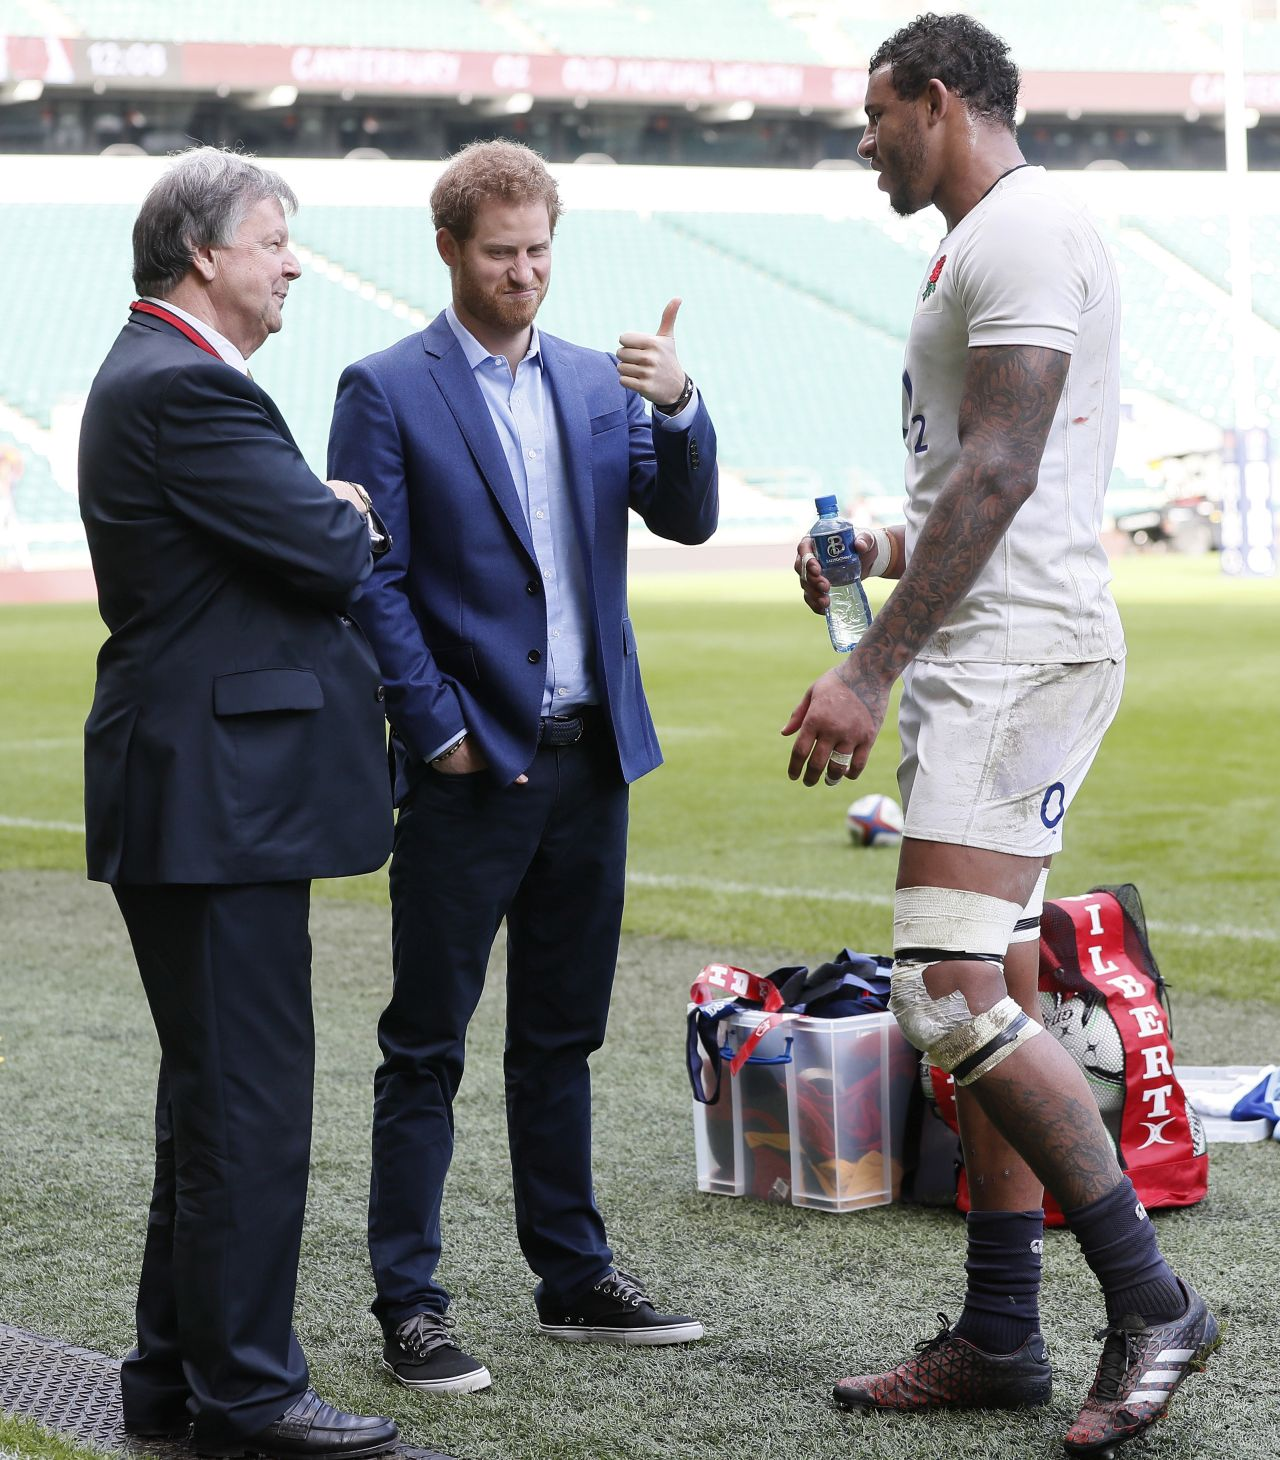 LONDON, ENGLAND - FEBRUARY 17: Prince Harry, (C) speaks with England player Courtney Lawes, (R) and Ian Richie, CEO of the RFU, during a visit to an England Rugby Squad training session at Twickenham Stadium on February 17, 2017 in London, England. In his new role as Patron of the Rugby Football Union (RFU), Prince Harry attended the England rugby team open training session. (Photo by Kirsty Wigglesworth - WPA Pool/Getty Images)